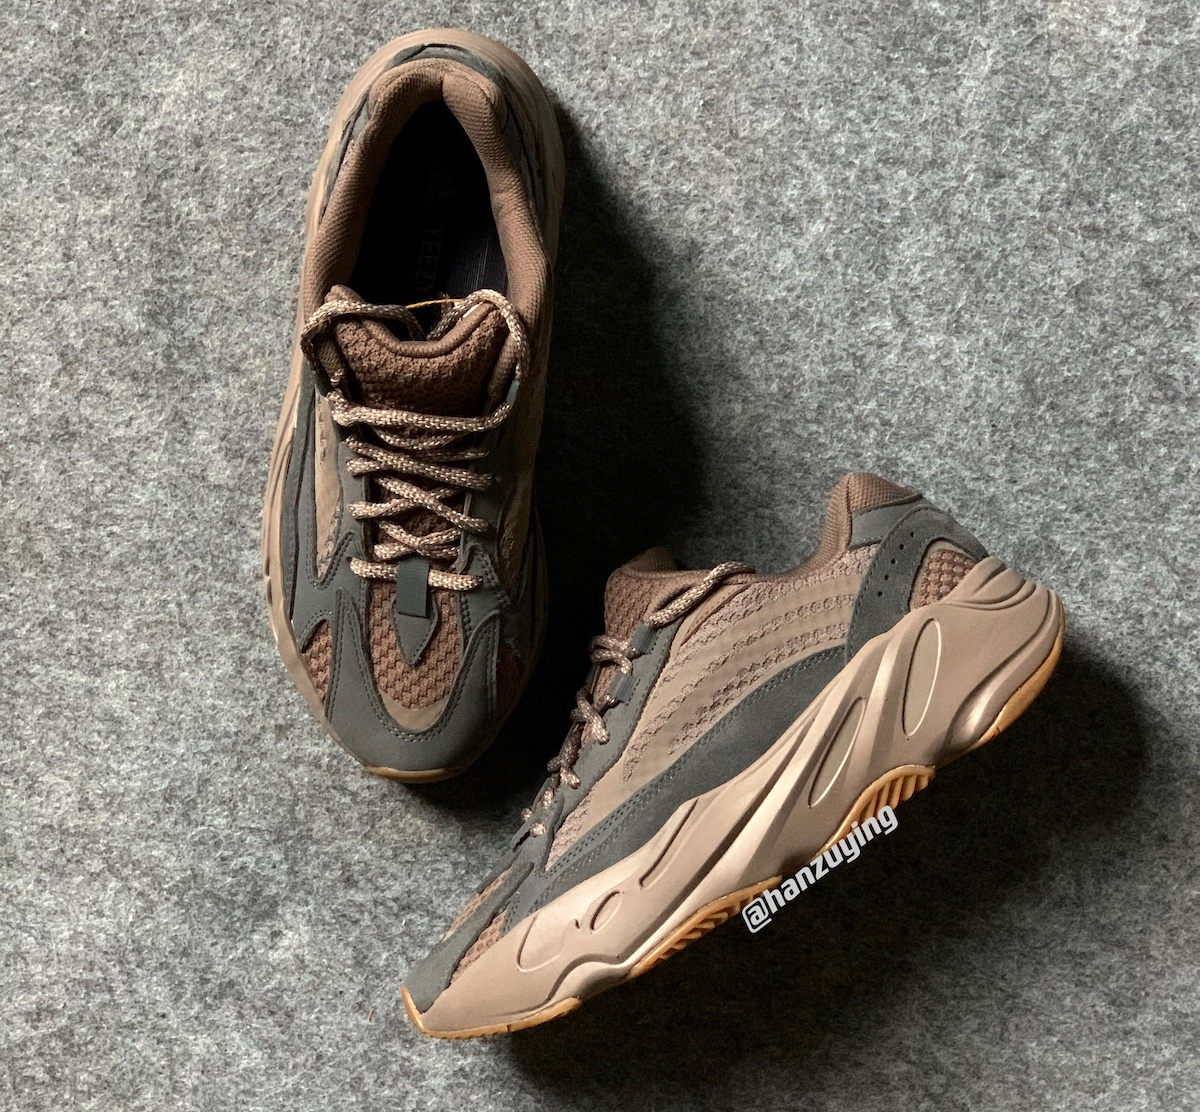 adidas yeezy boost 700 v2 mauve release info price 1